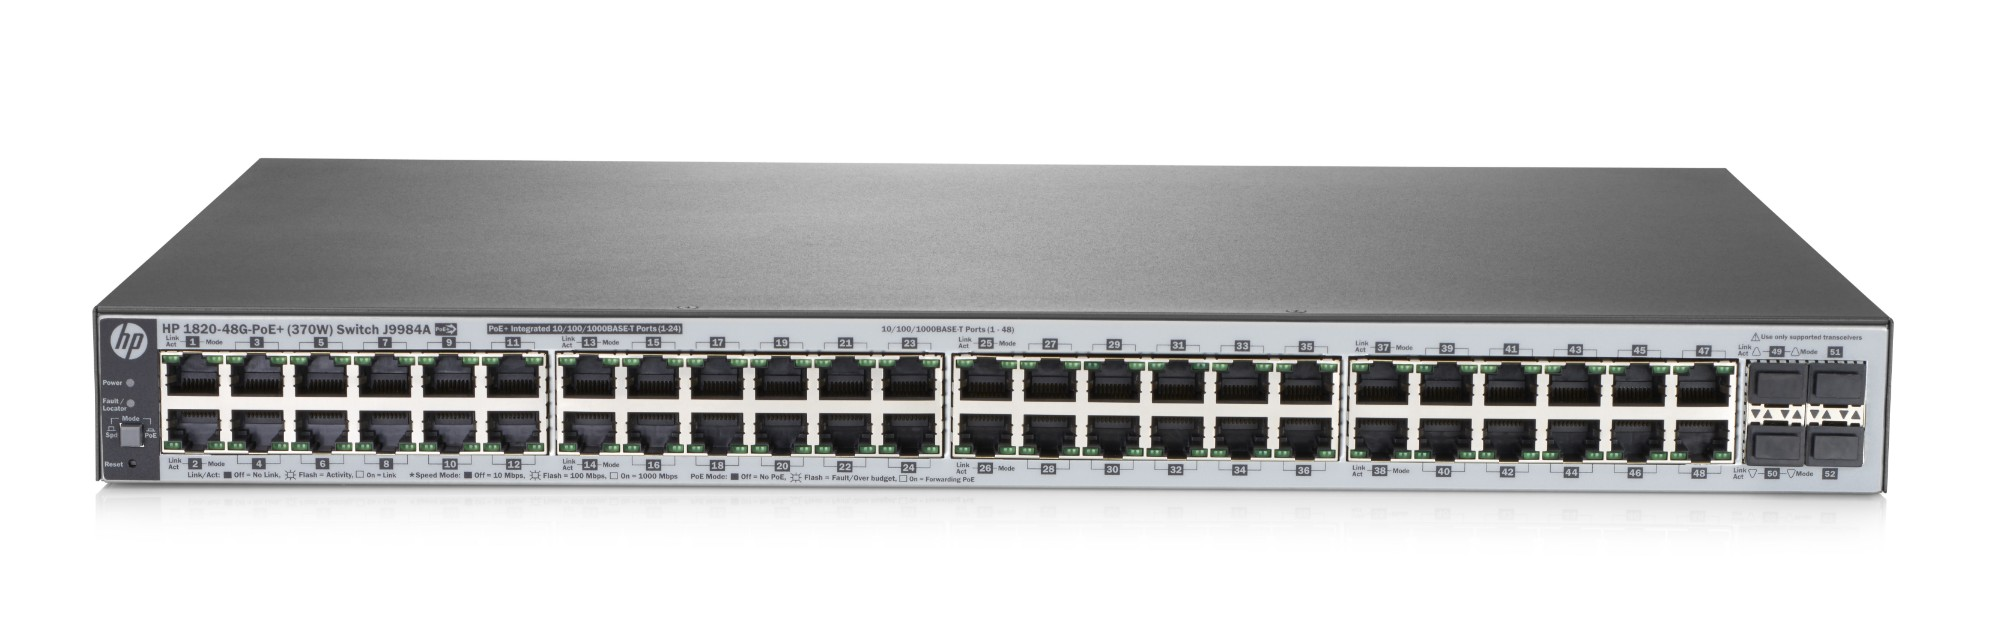 Hewlett Packard Enterprise 1820-48G-PoE+ (370W) Managed L2 Gigabit Ethernet (10/100/1000) Grey 1U Power over Ethernet (PoE)